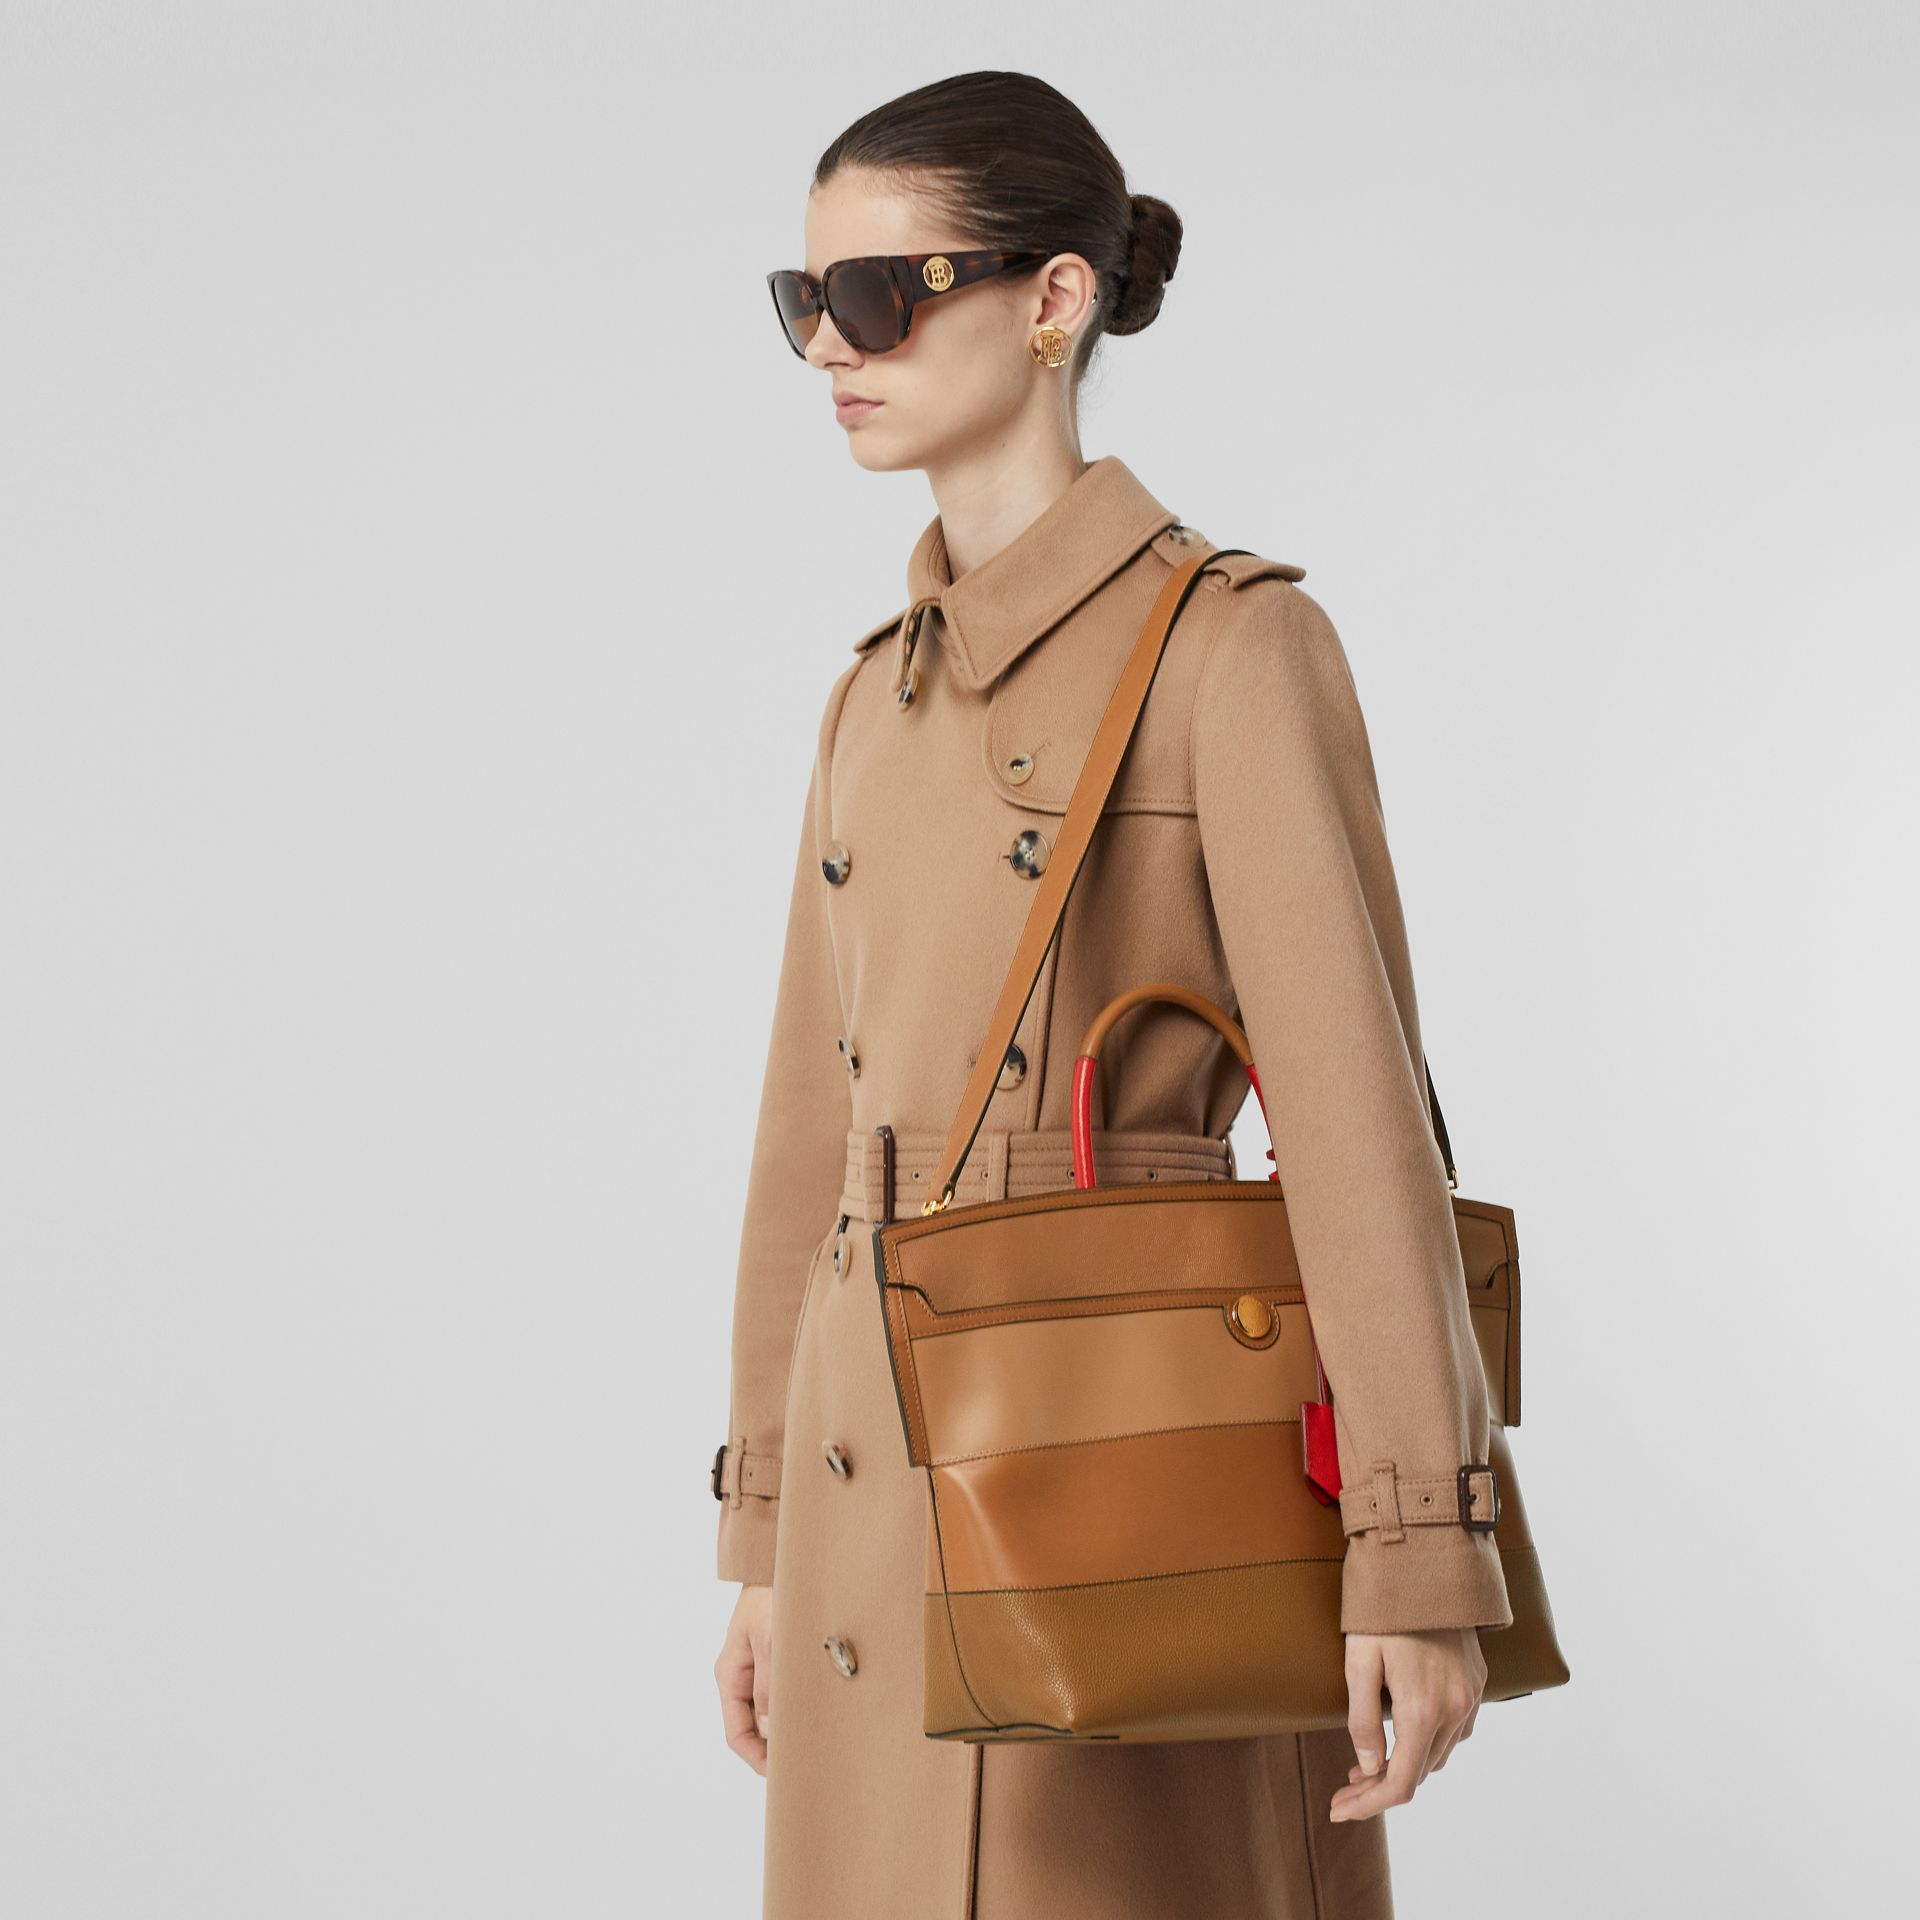 Panelled Leather Society Top Handle Bag in Warm Camel - Women | Burberry - gallery image 2